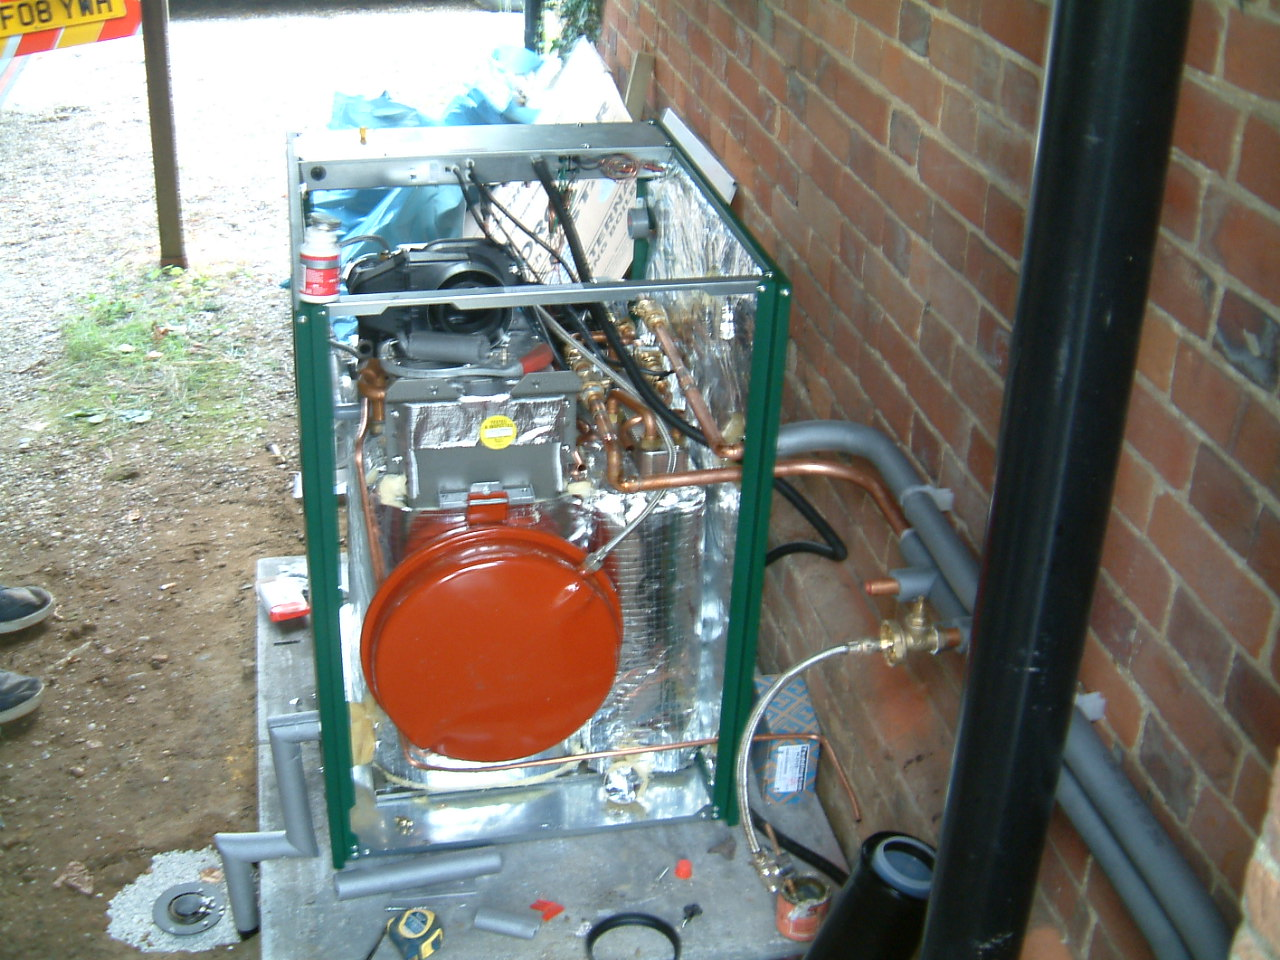 For Floor Furnace Wiring Diagram New Worcester Bosch Oil Combination Boiler Hot Water And